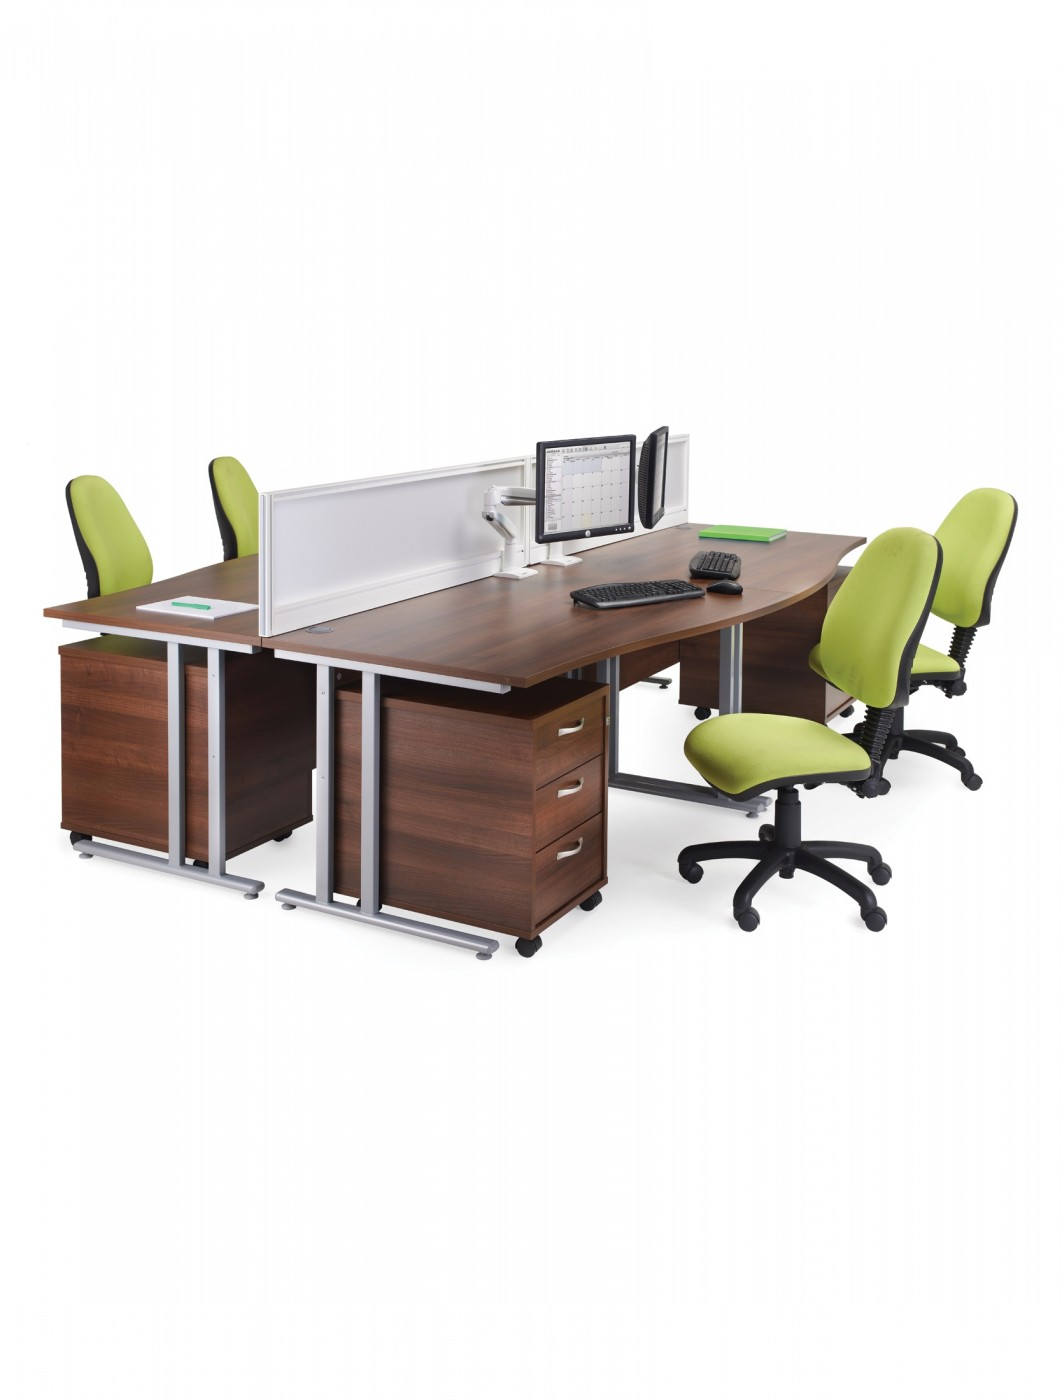 Mobile pedestal 3 drawer r3m 121 office furniture for Mobile furniture